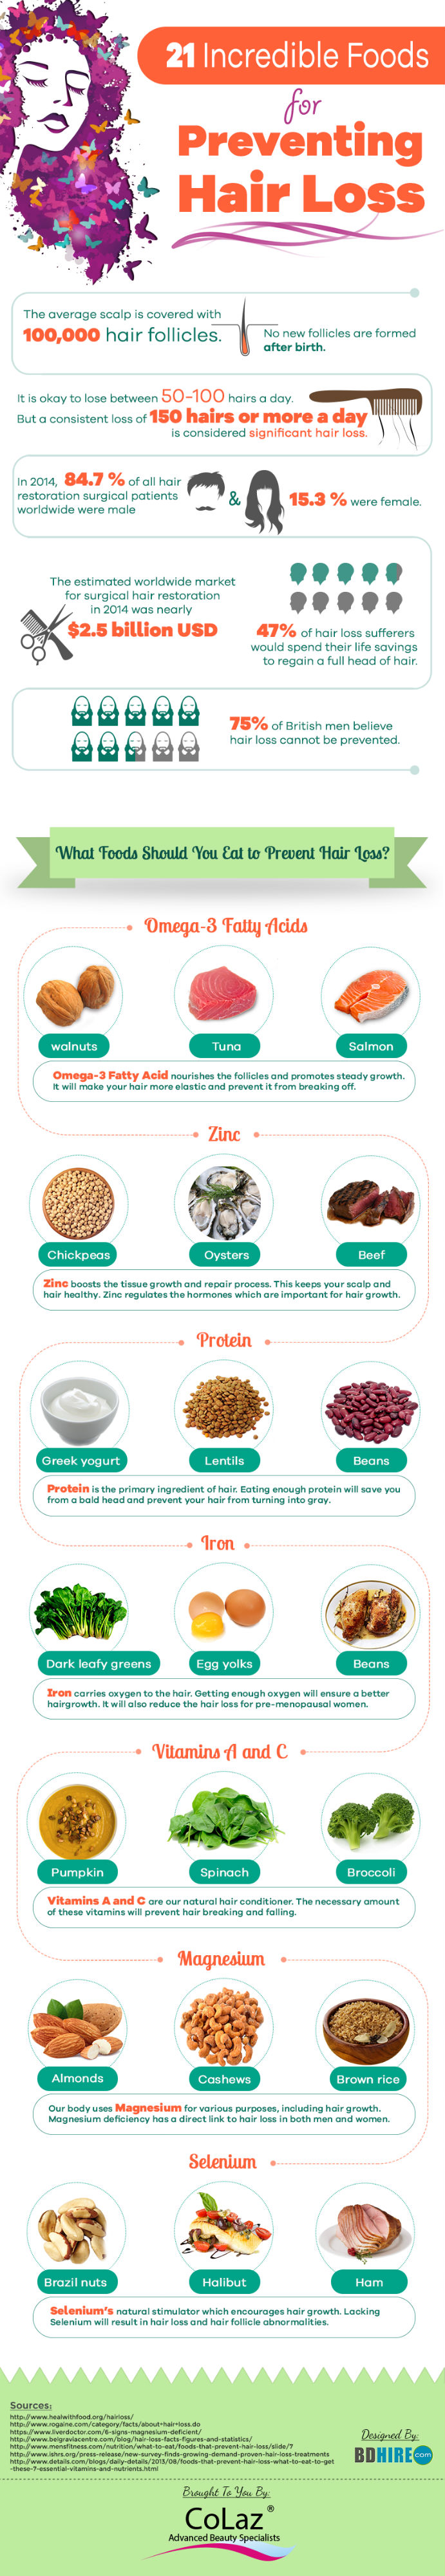 21 Incredible Foods For Preventing Hair Loss [Infographic]